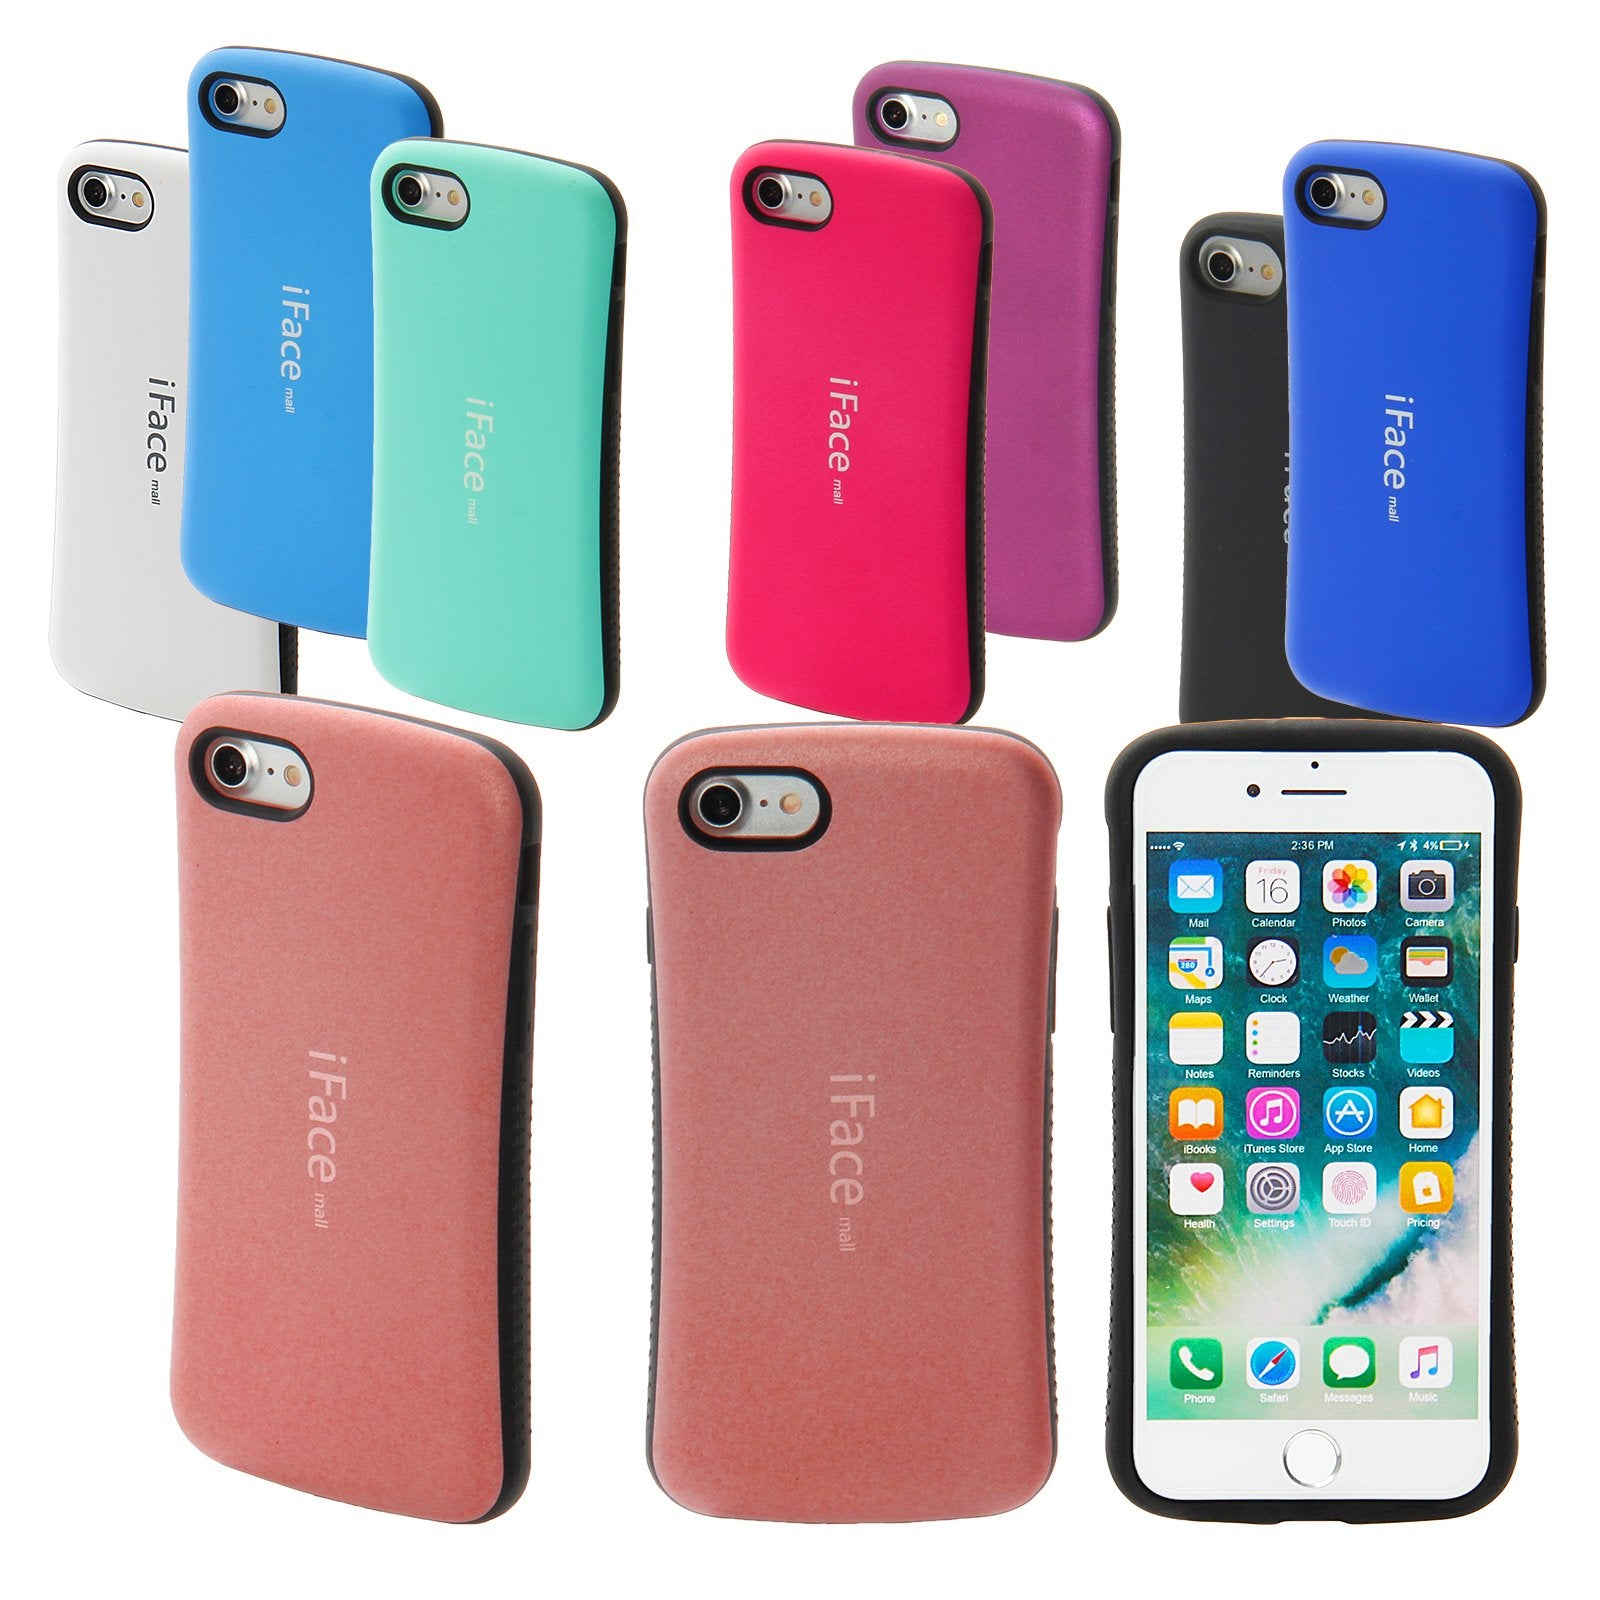 Double Coil Faster Wireless Charger For Iphone X 8 Plus Goospery 7 Blue Moon Diary Case Hotpink Jordan In Narrabundah Australia Purchased A